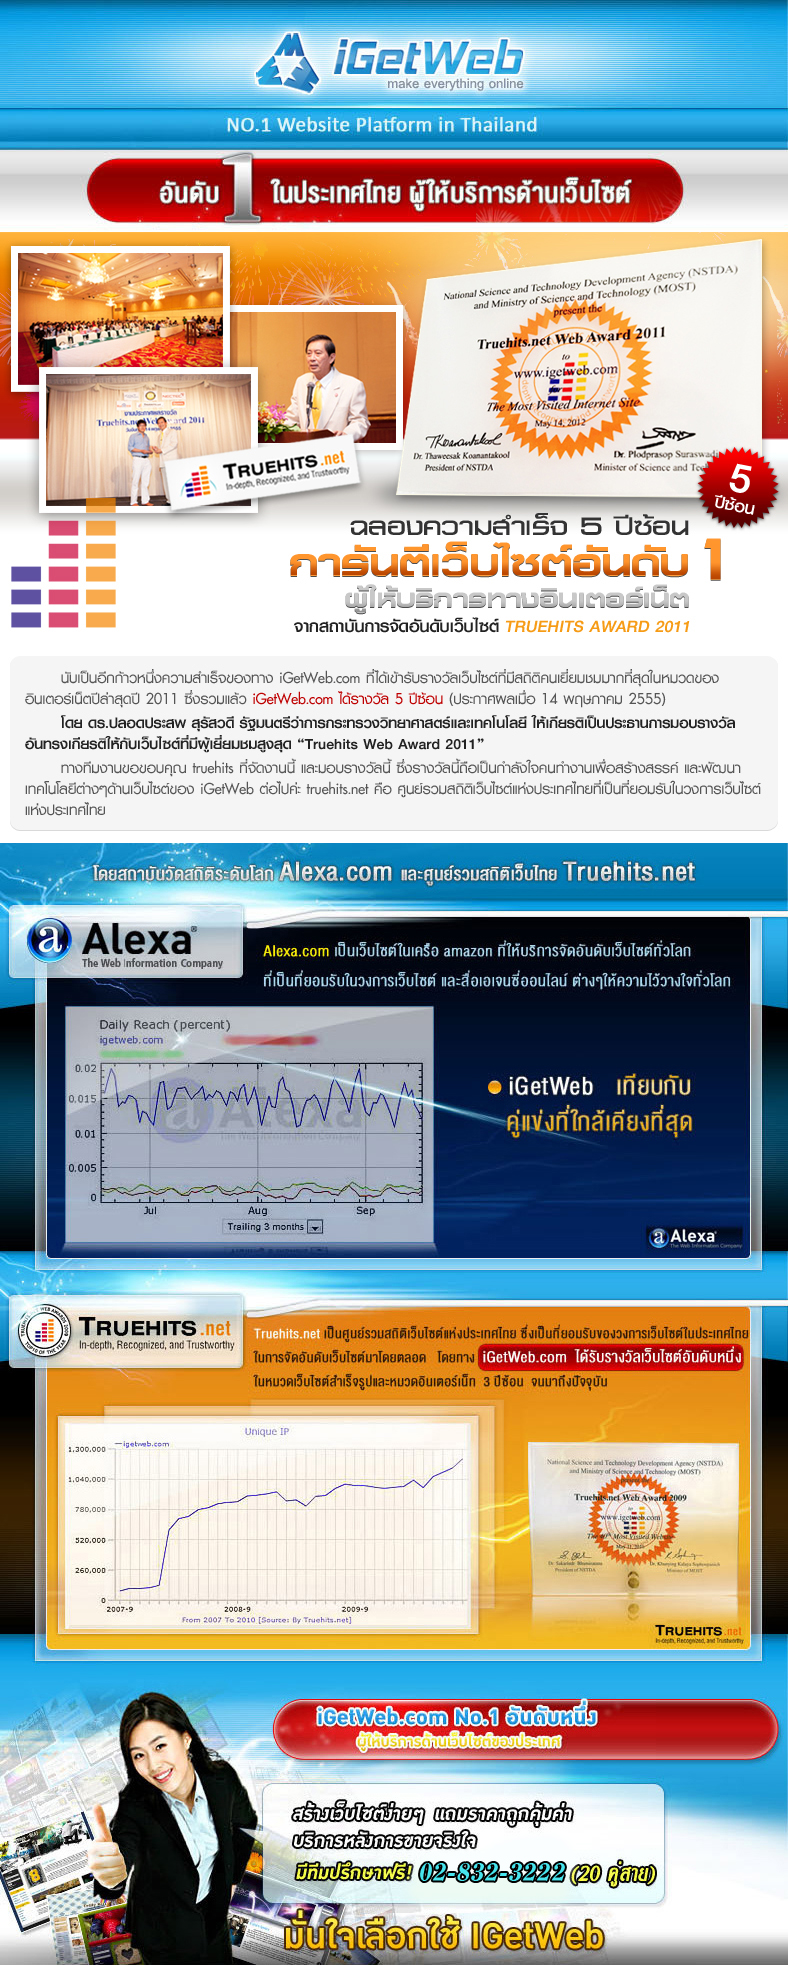 Number 1 website platform in Thailand